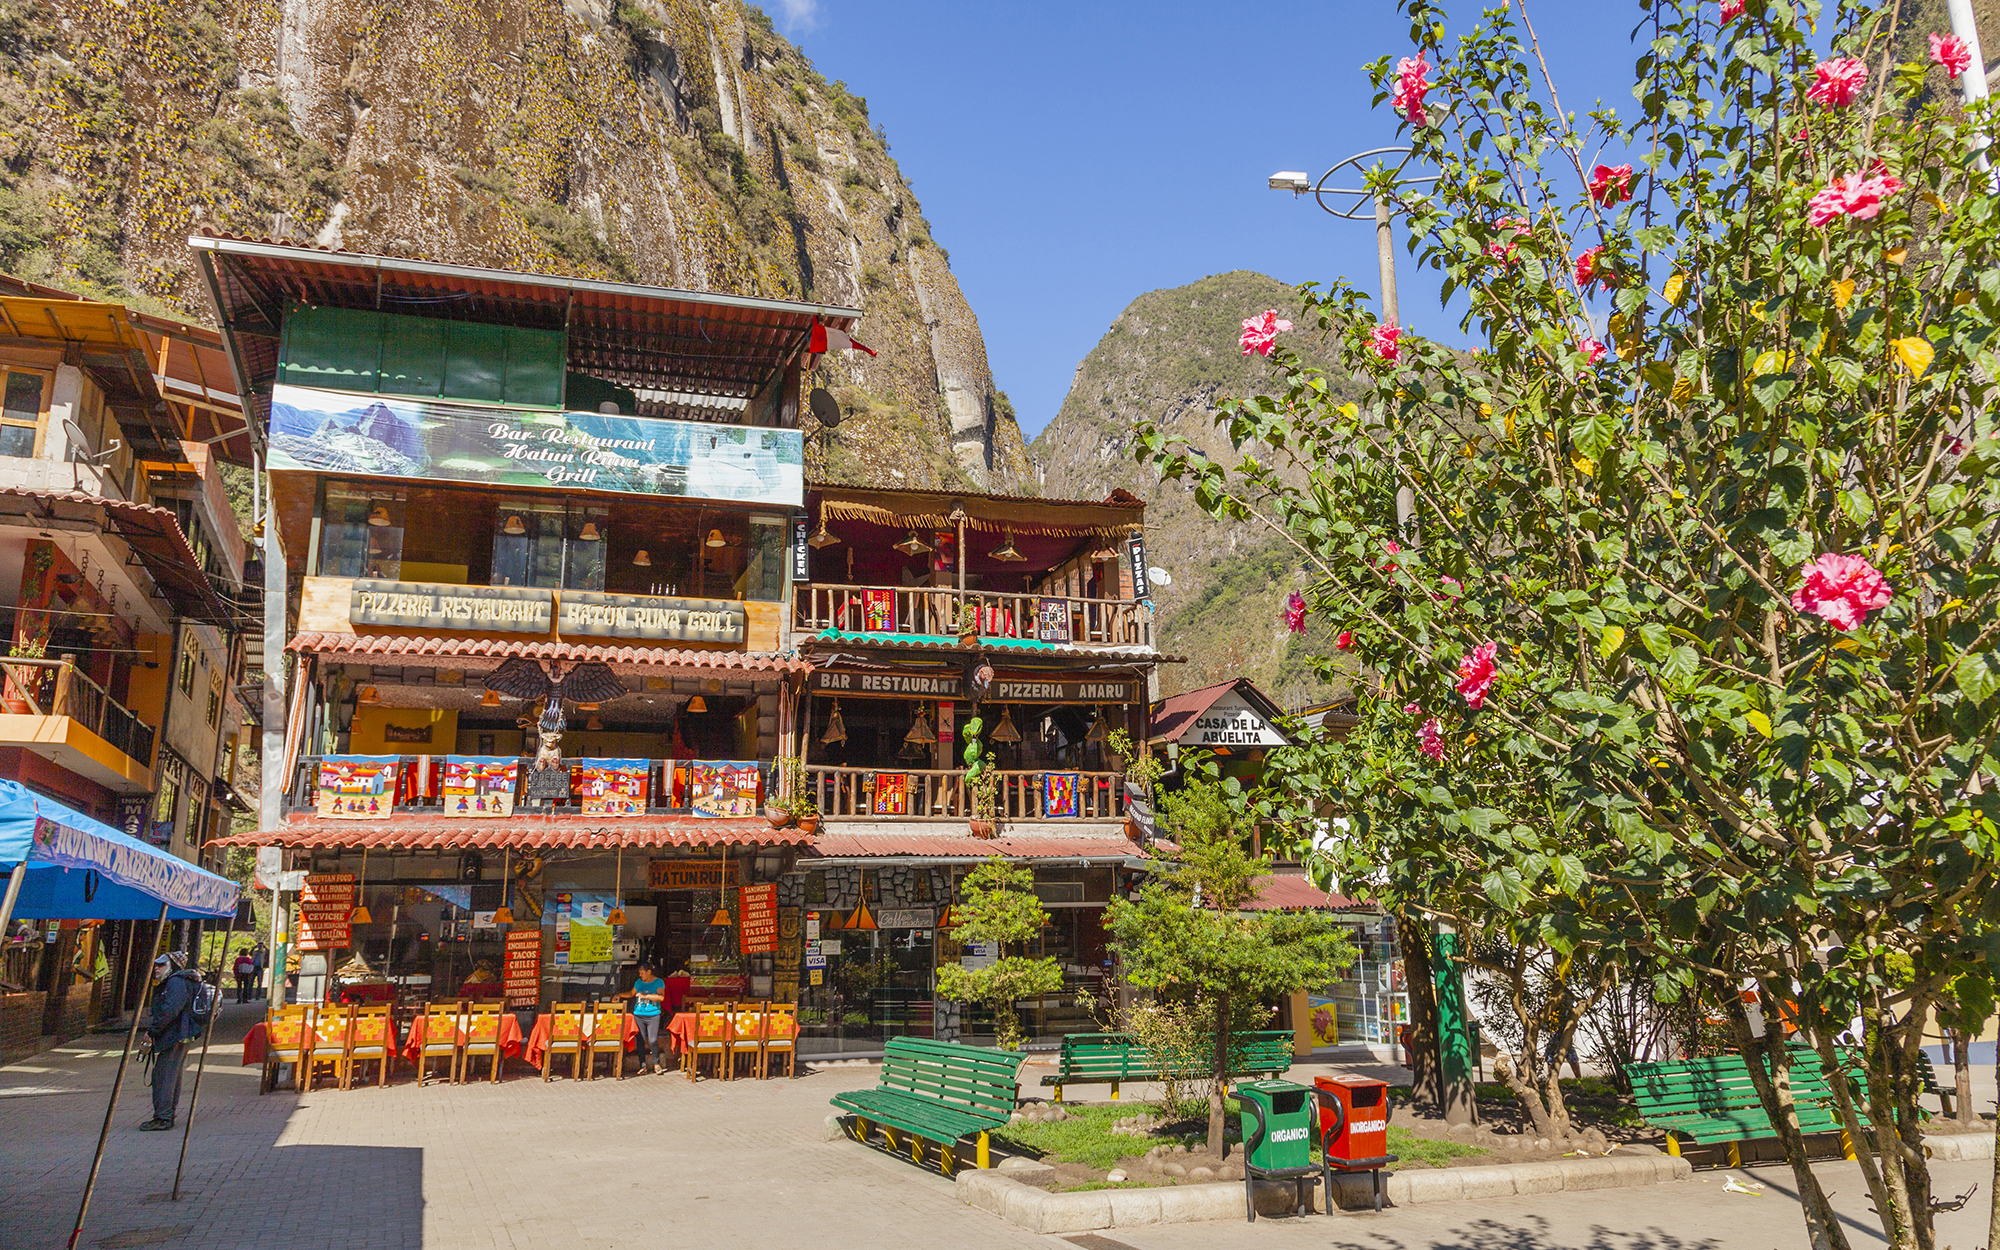 Peru, Machupicchu-Peru, Traditional restaurant and mountains in background. (Photo by: JTB/UIG via Getty Images) (Photo by: JTB Photo/UIG via Getty Images)